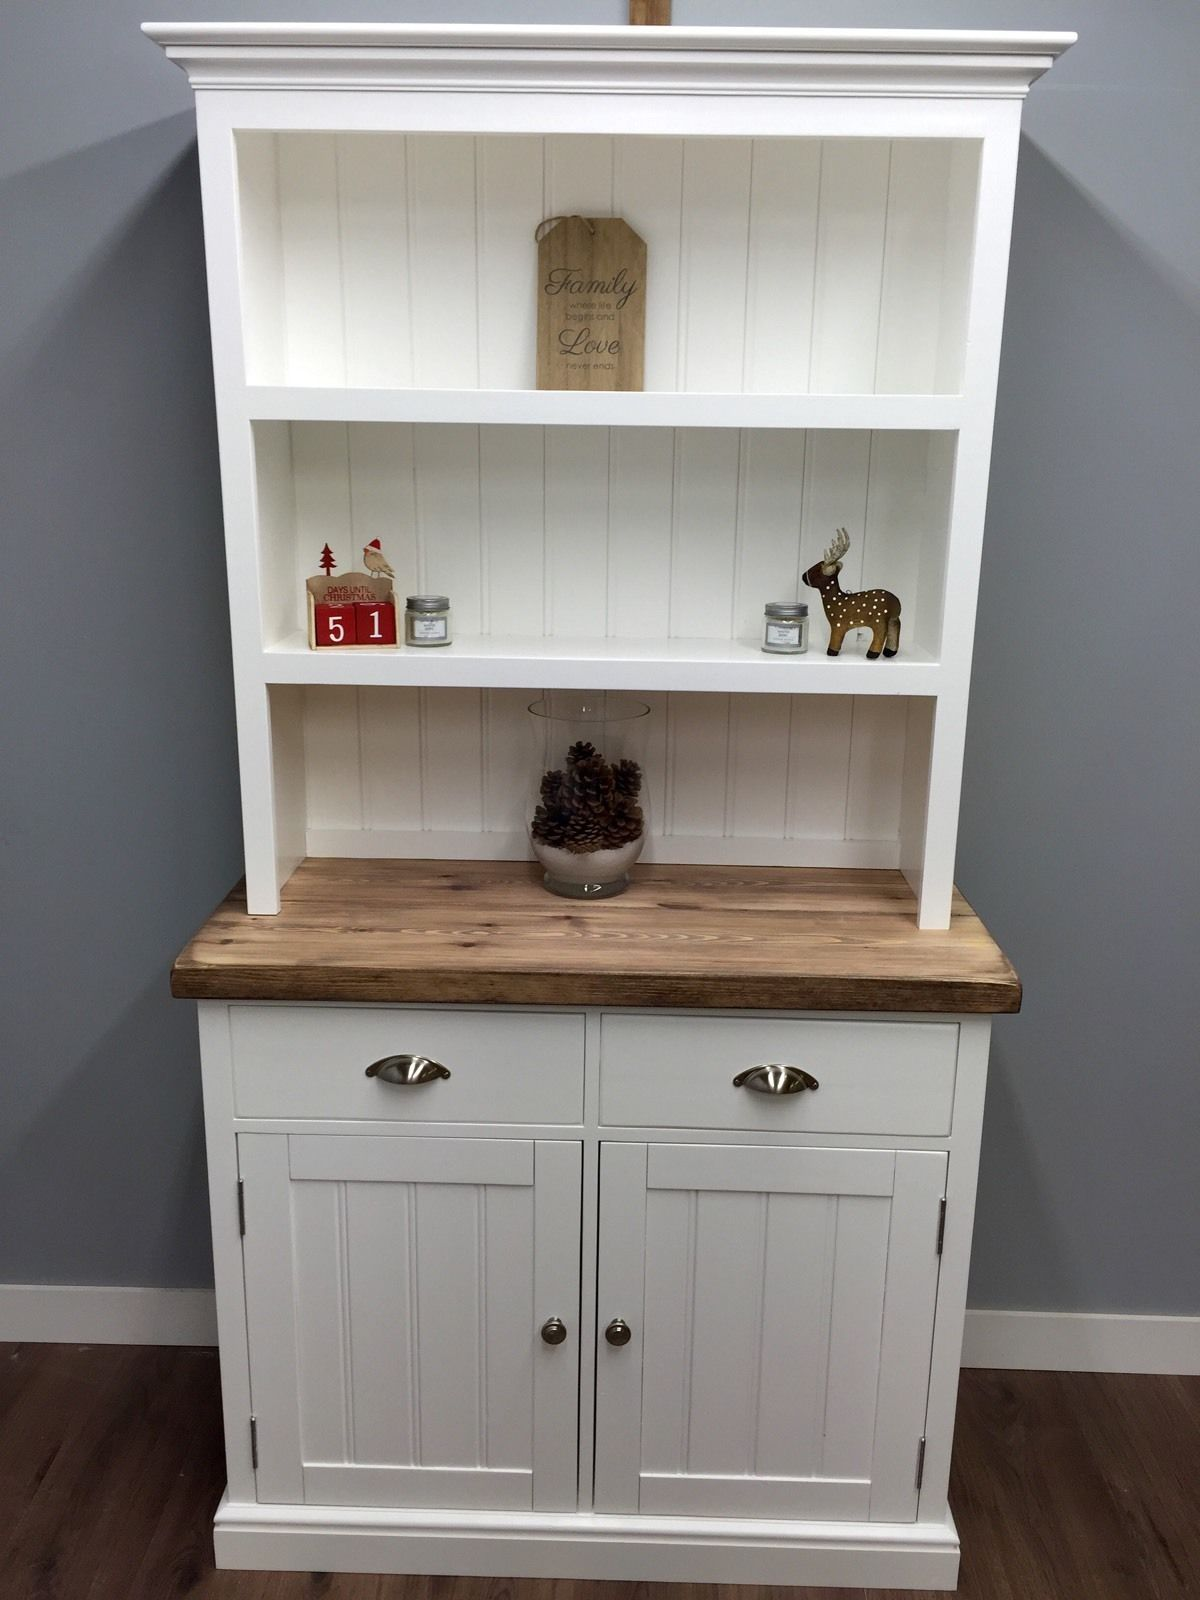 Kitchen Welsh Dresser Farmhouse Shabby Chic Display Unit Oak Pine Farrow Ball Ebay